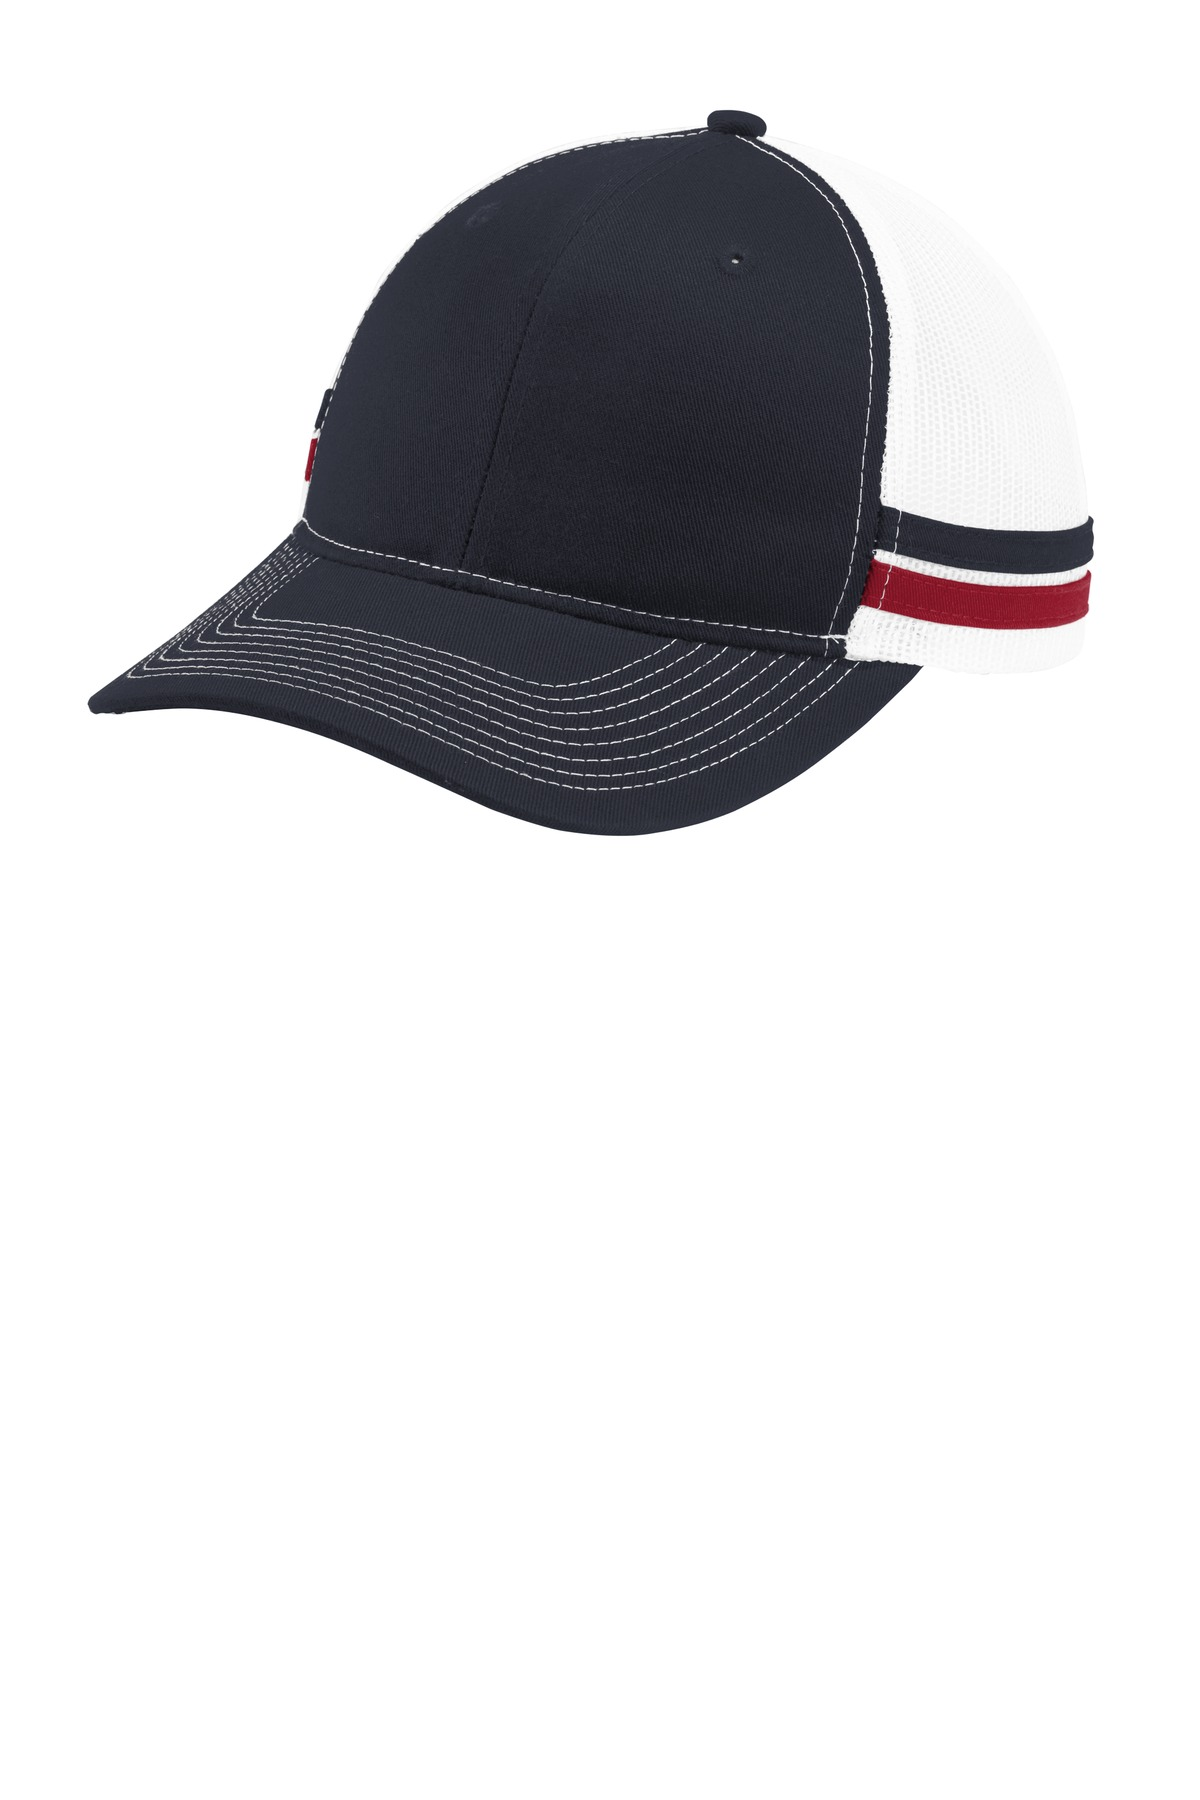 Port Authority  ®  Two-Stripe Snapback Trucker Cap. C113 - Rich Navy/ Flame Red/ White